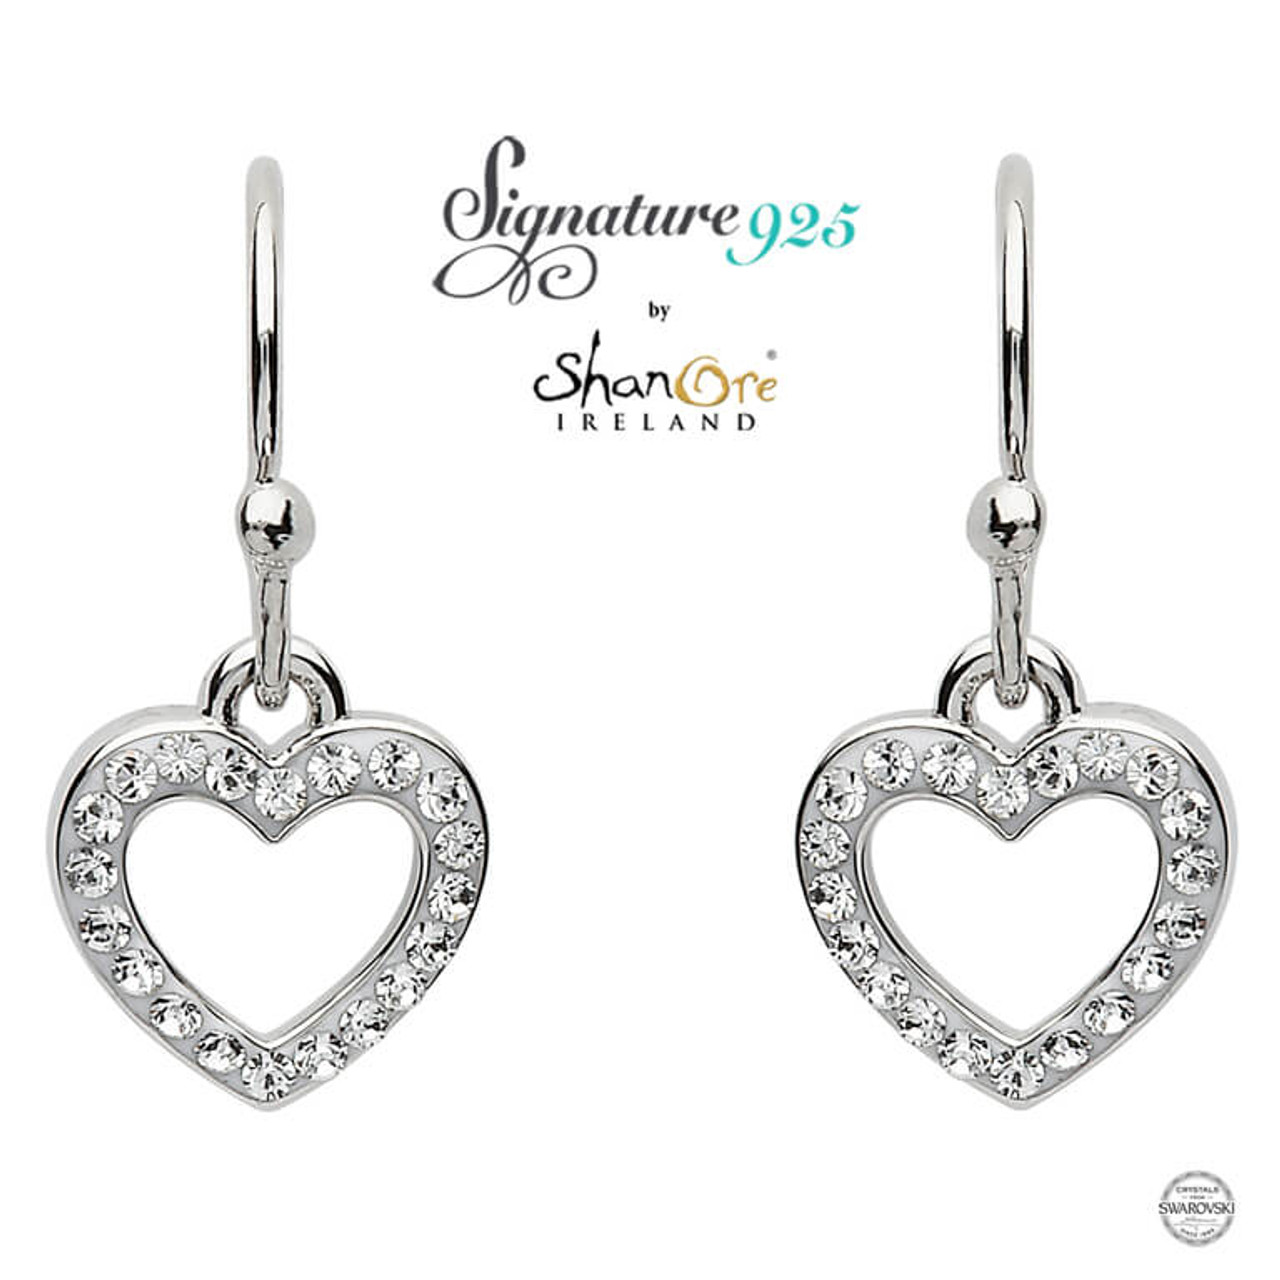 buy online 100% original elegant and graceful Sterling Silver Heart Shape Earrings Adorned With White Swarovski Crystals